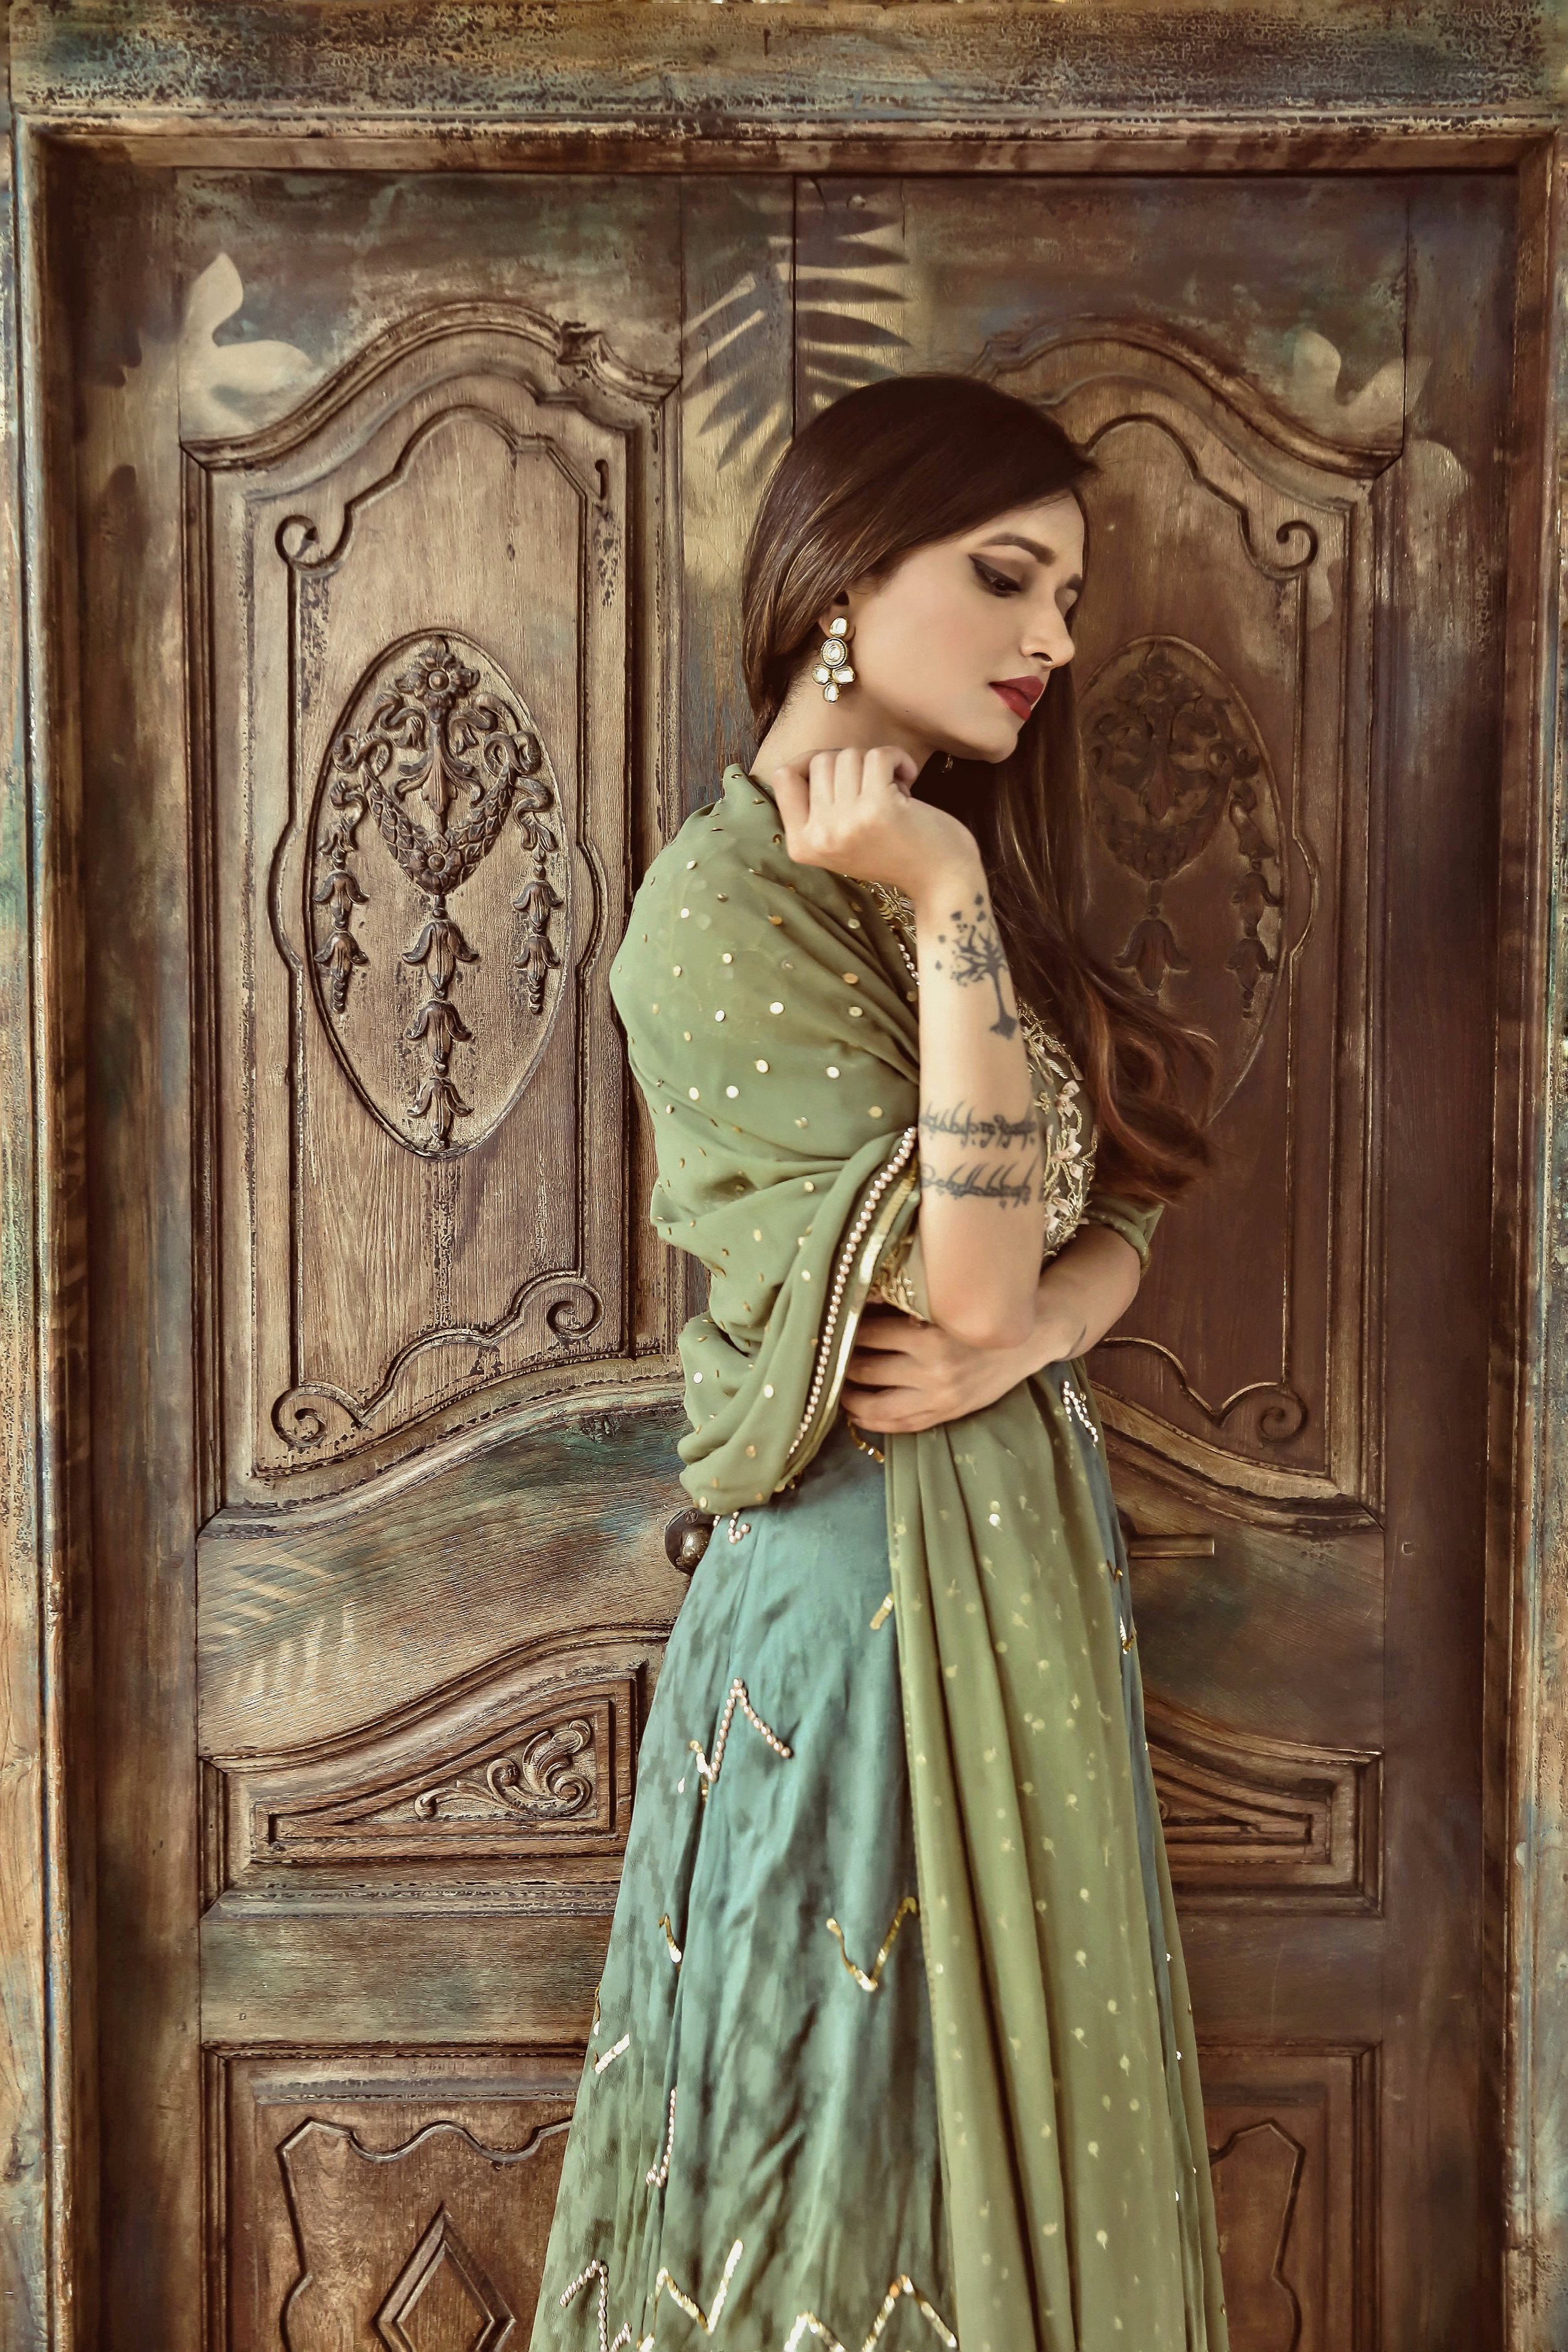 The-Chic-Armoire-by-Nidhi-Kunder-Ohaila-Khan-1